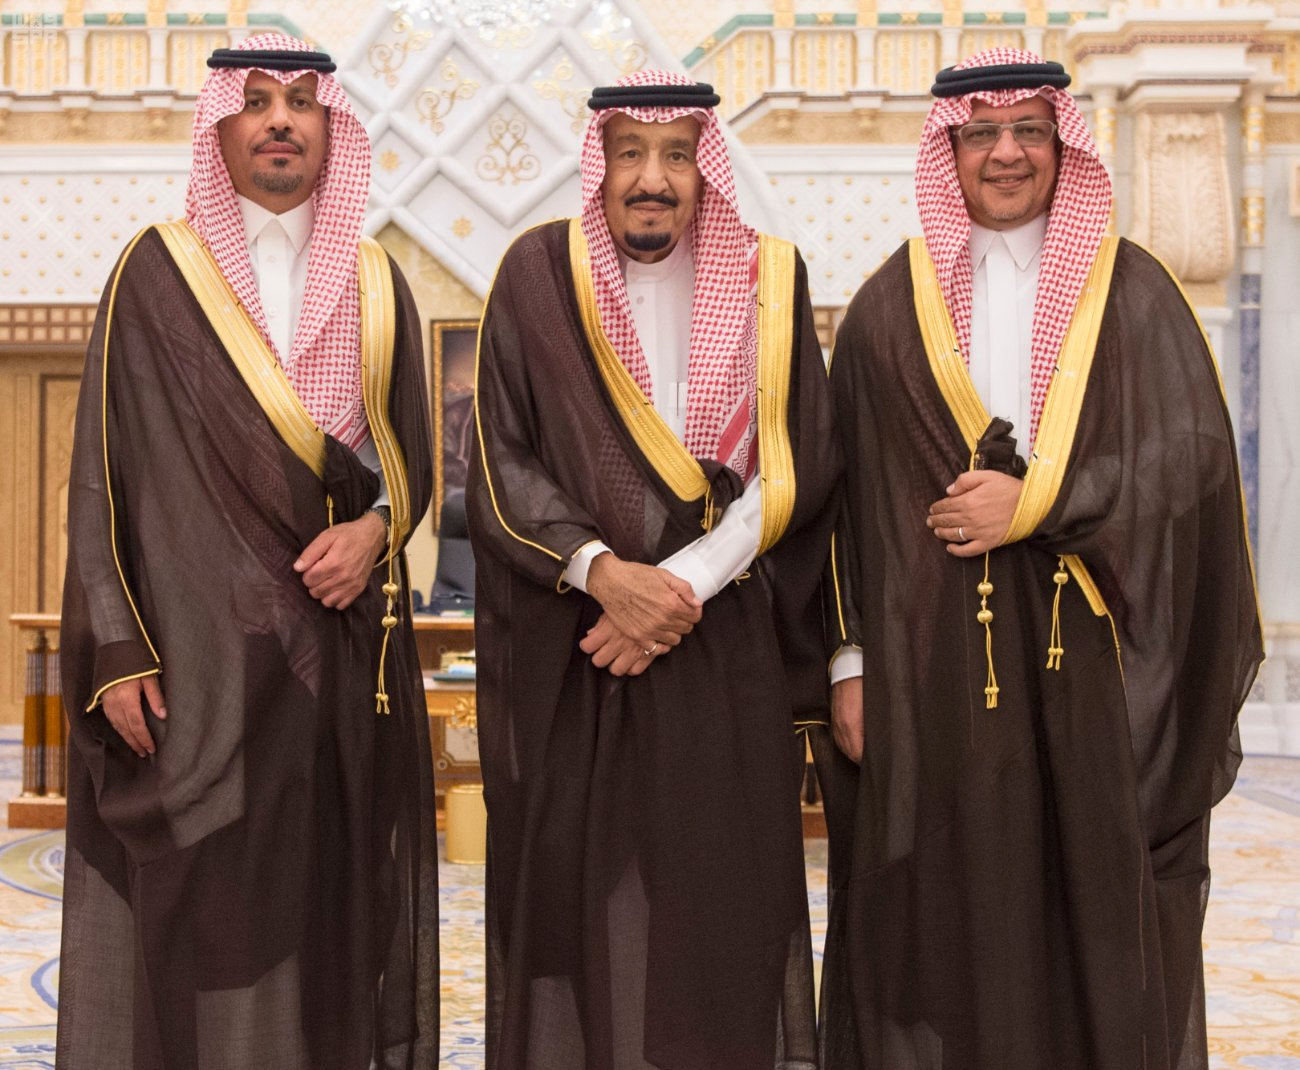 Saudi King Salman bin Abdulaziz Al Saud poses for a photo with National Guard Minister Khaled bin Ayyaf and Economy Minister Mohammed al-Tuwaijri during a swearing-in ceremony in Riyadh, Saudi Arabia, November 6, 2017. Saudi Press